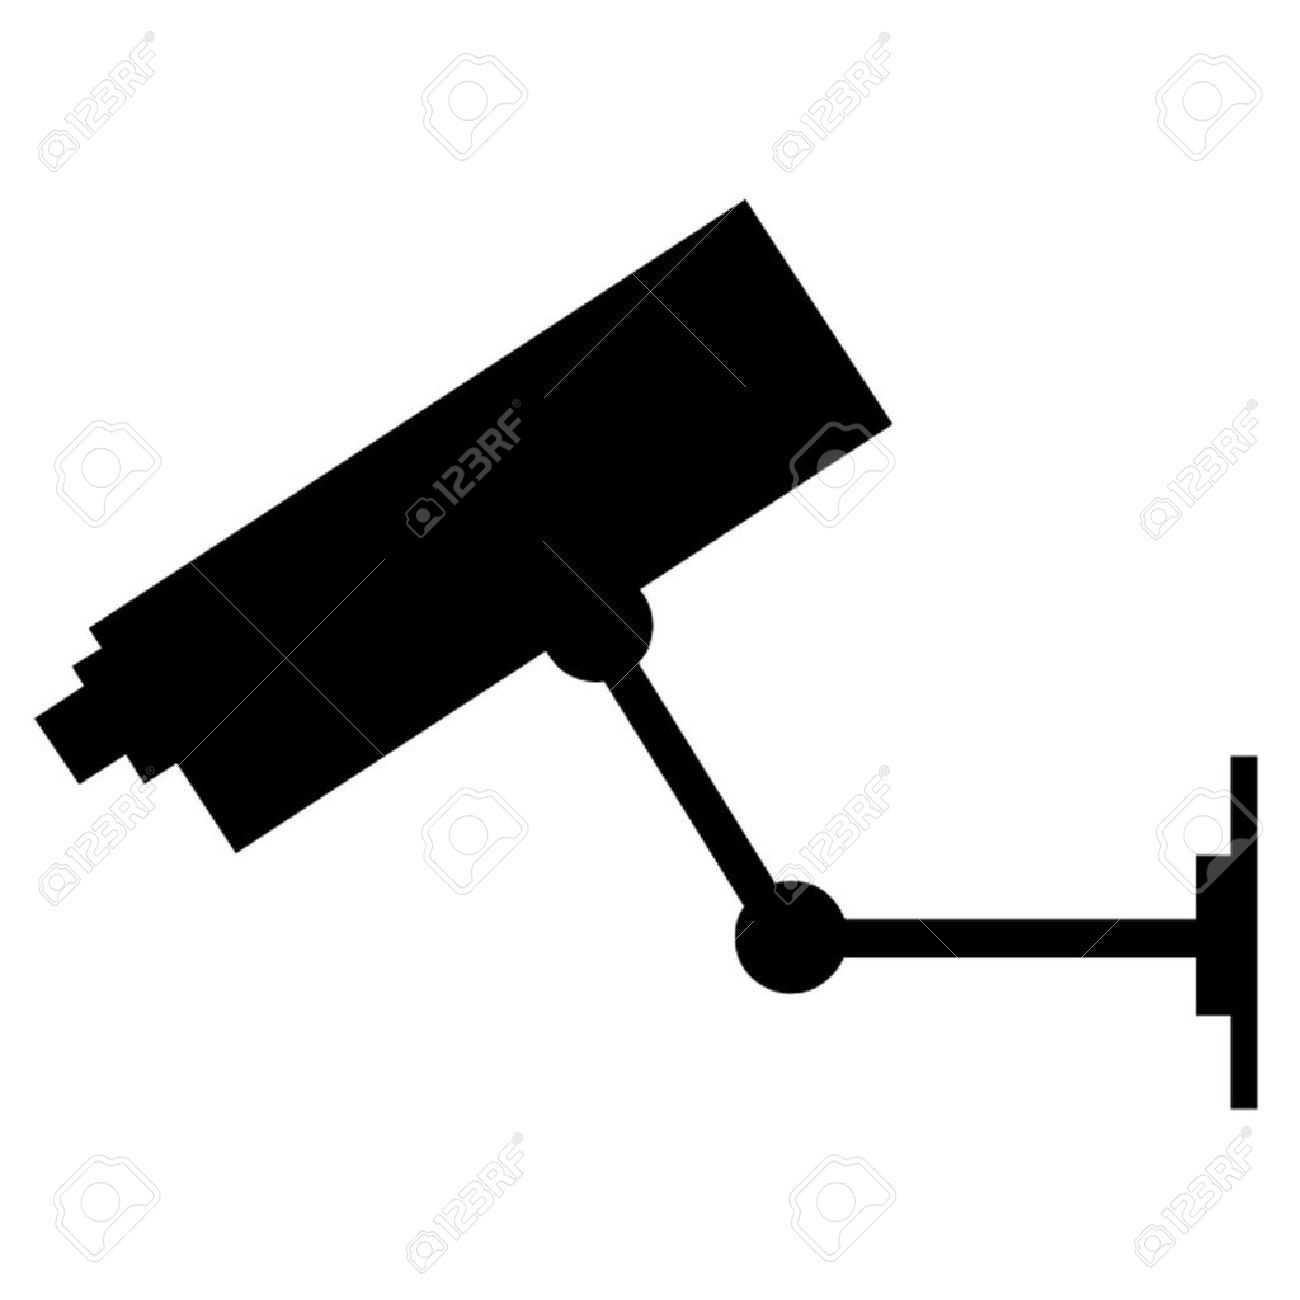 Video Surveillance Camera Clip Art-Video Surveillance Camera Clip Art-13